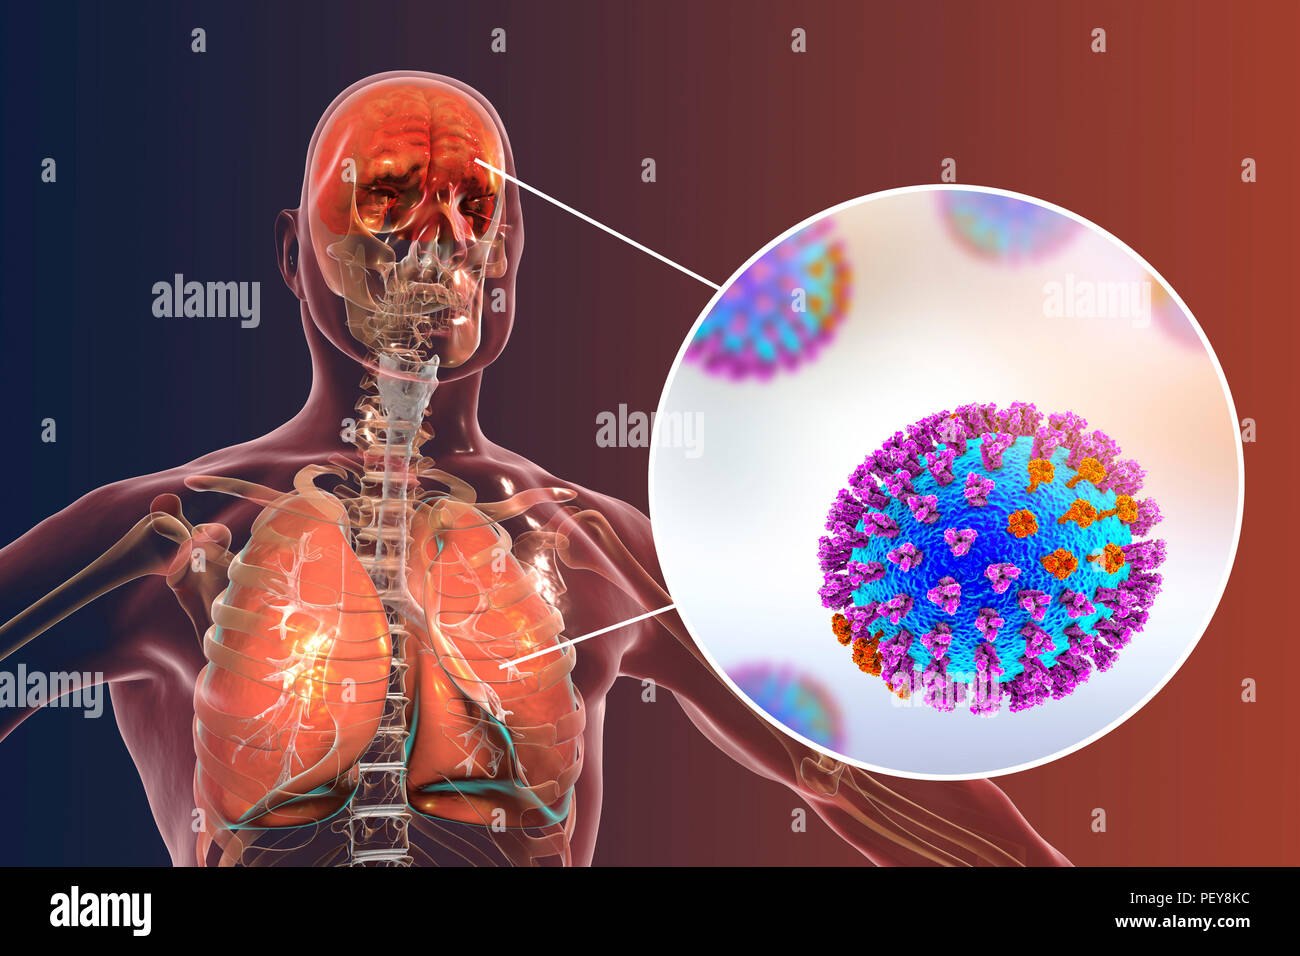 Computer illustrations showing the common complications of flu infection, such as encephalitis and pneumonia. - Stock Image